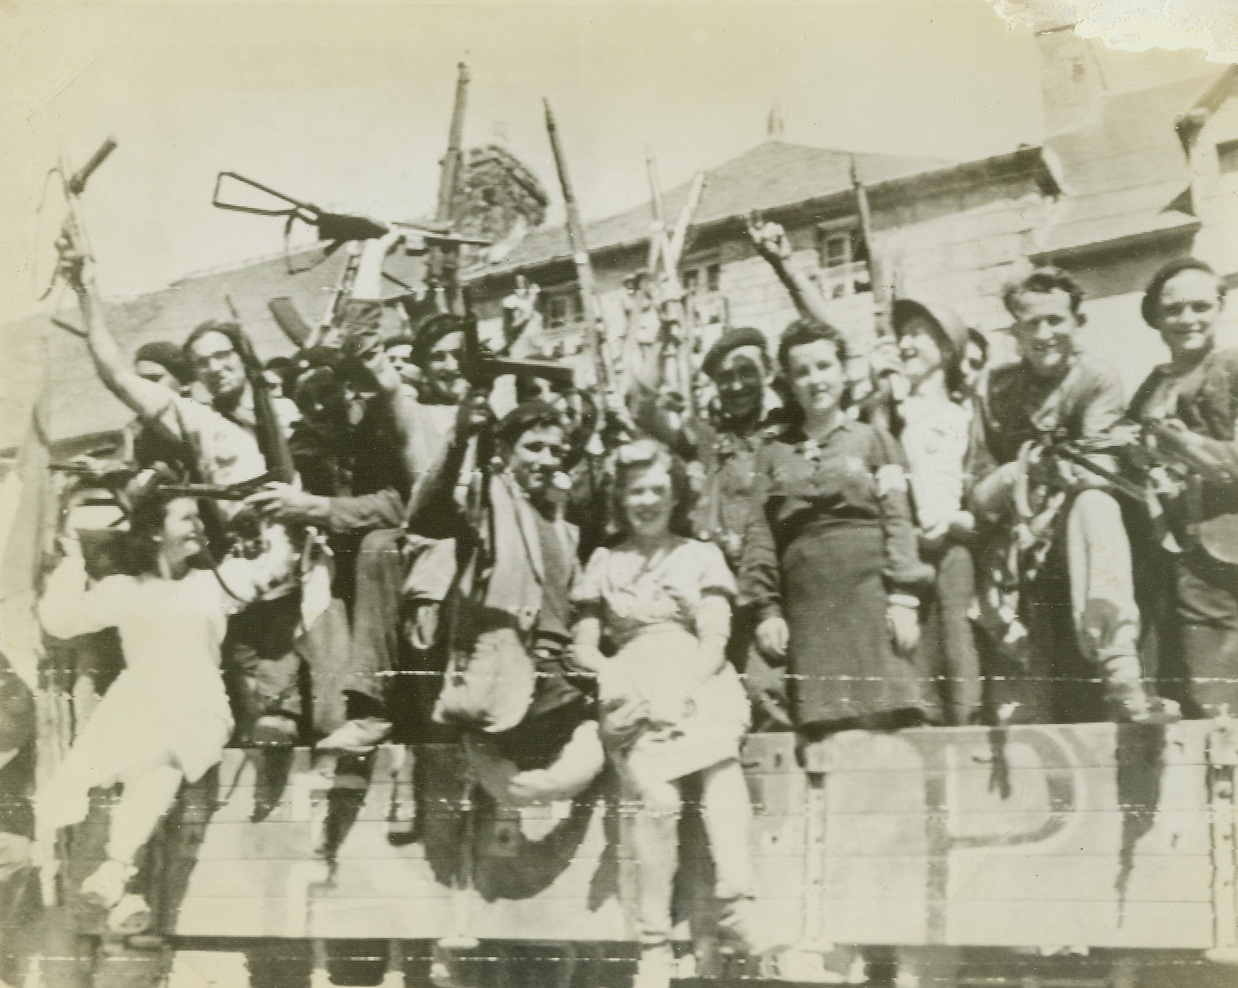 Hunting Party Searches Nazis, 8/18/1944. France – Waving captured German guns enthusiastically, these fighting Frenchmen and women of the town of Rostrenen ride off to round up stray Nazis in the vicinity after the Yanks had wiped out most of the resistance. Credit: Army photo from ACME;